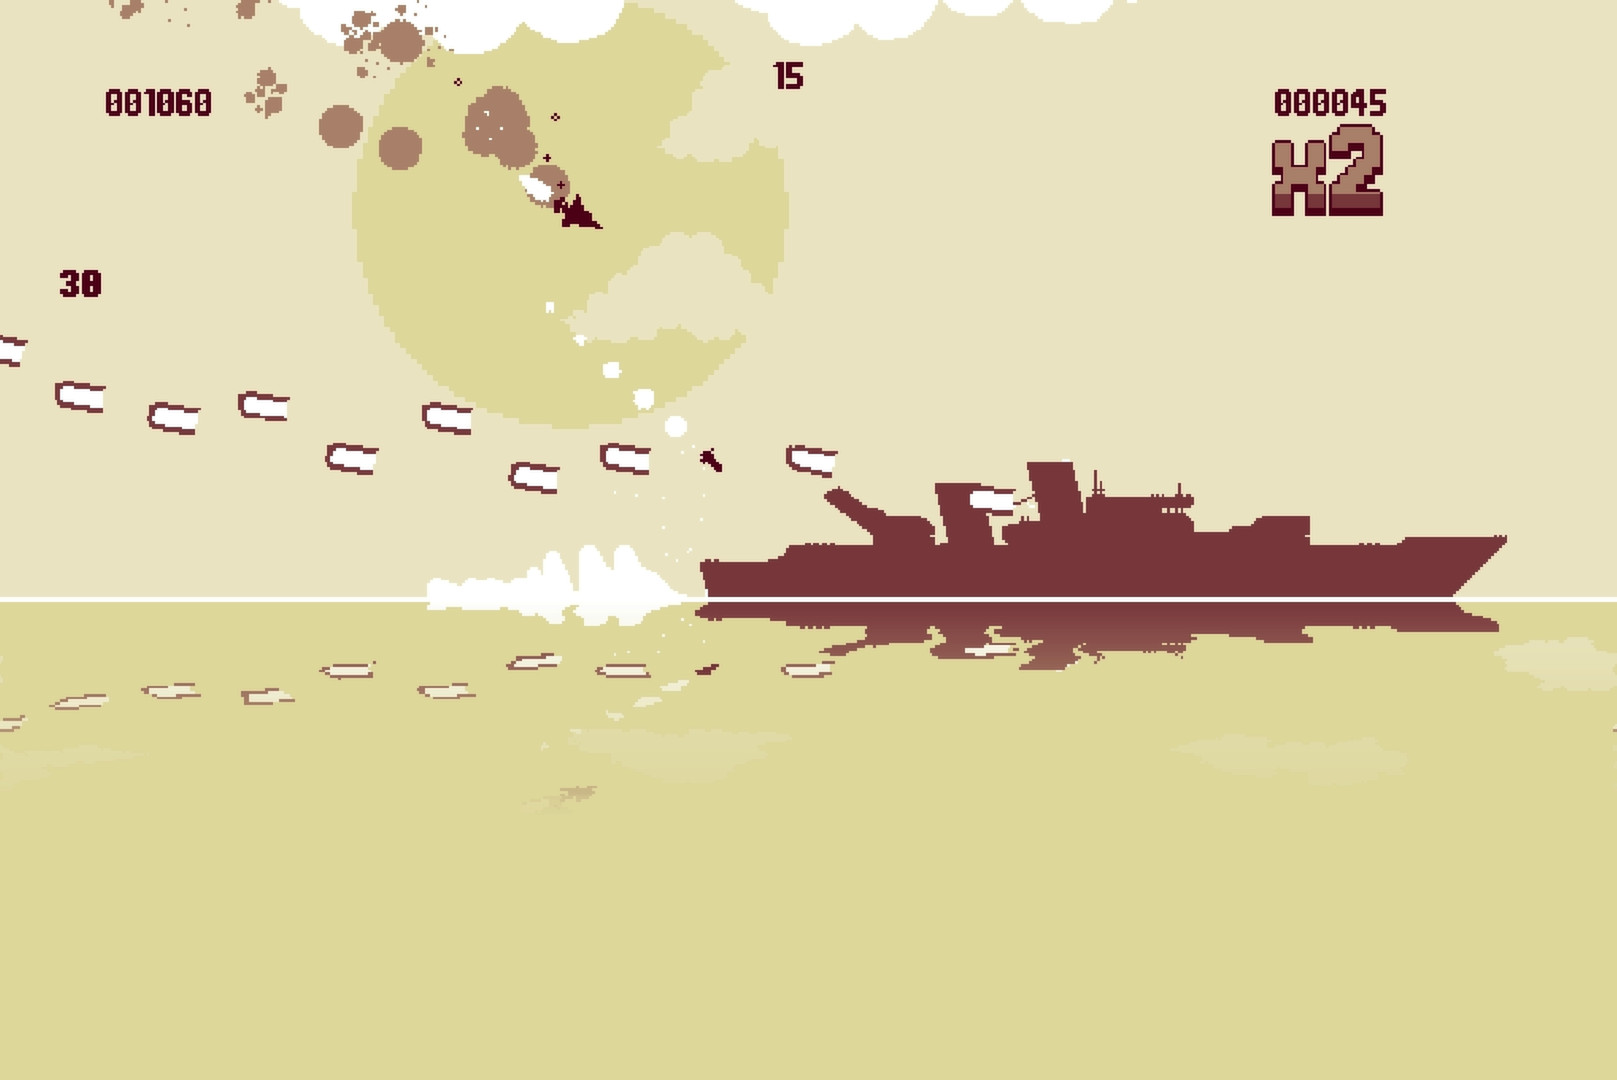 Find the best laptop for LUFTRAUSERS